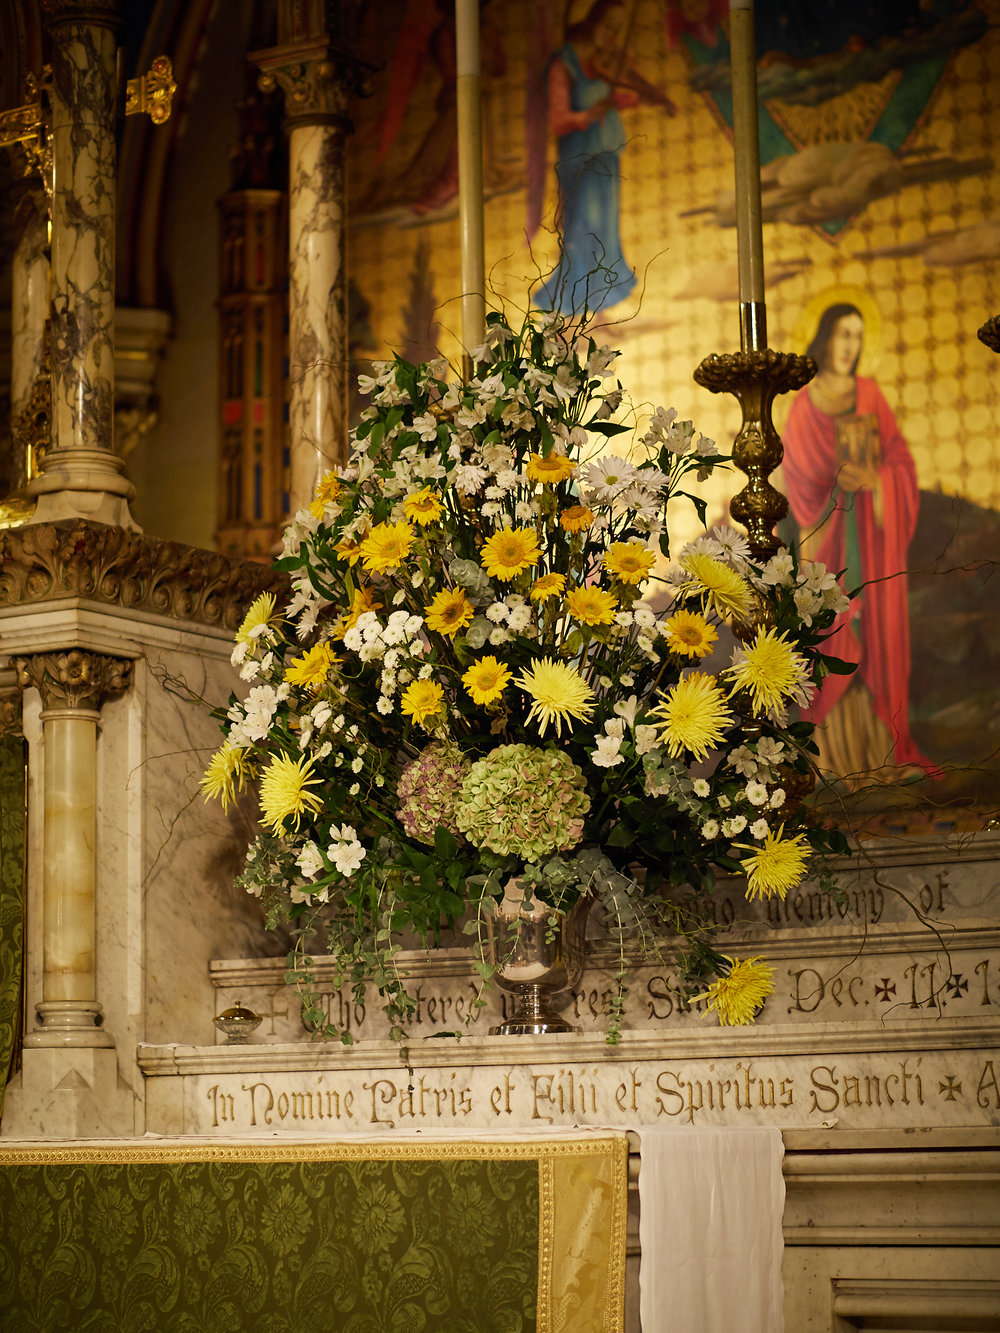 The high altar flowers were given to the glory of God and in thanksgiving for the life and ministry of Donald Lothrop Garfield, priest and vii rector of Saint Mary's.   Photo by Ricardo Gomez